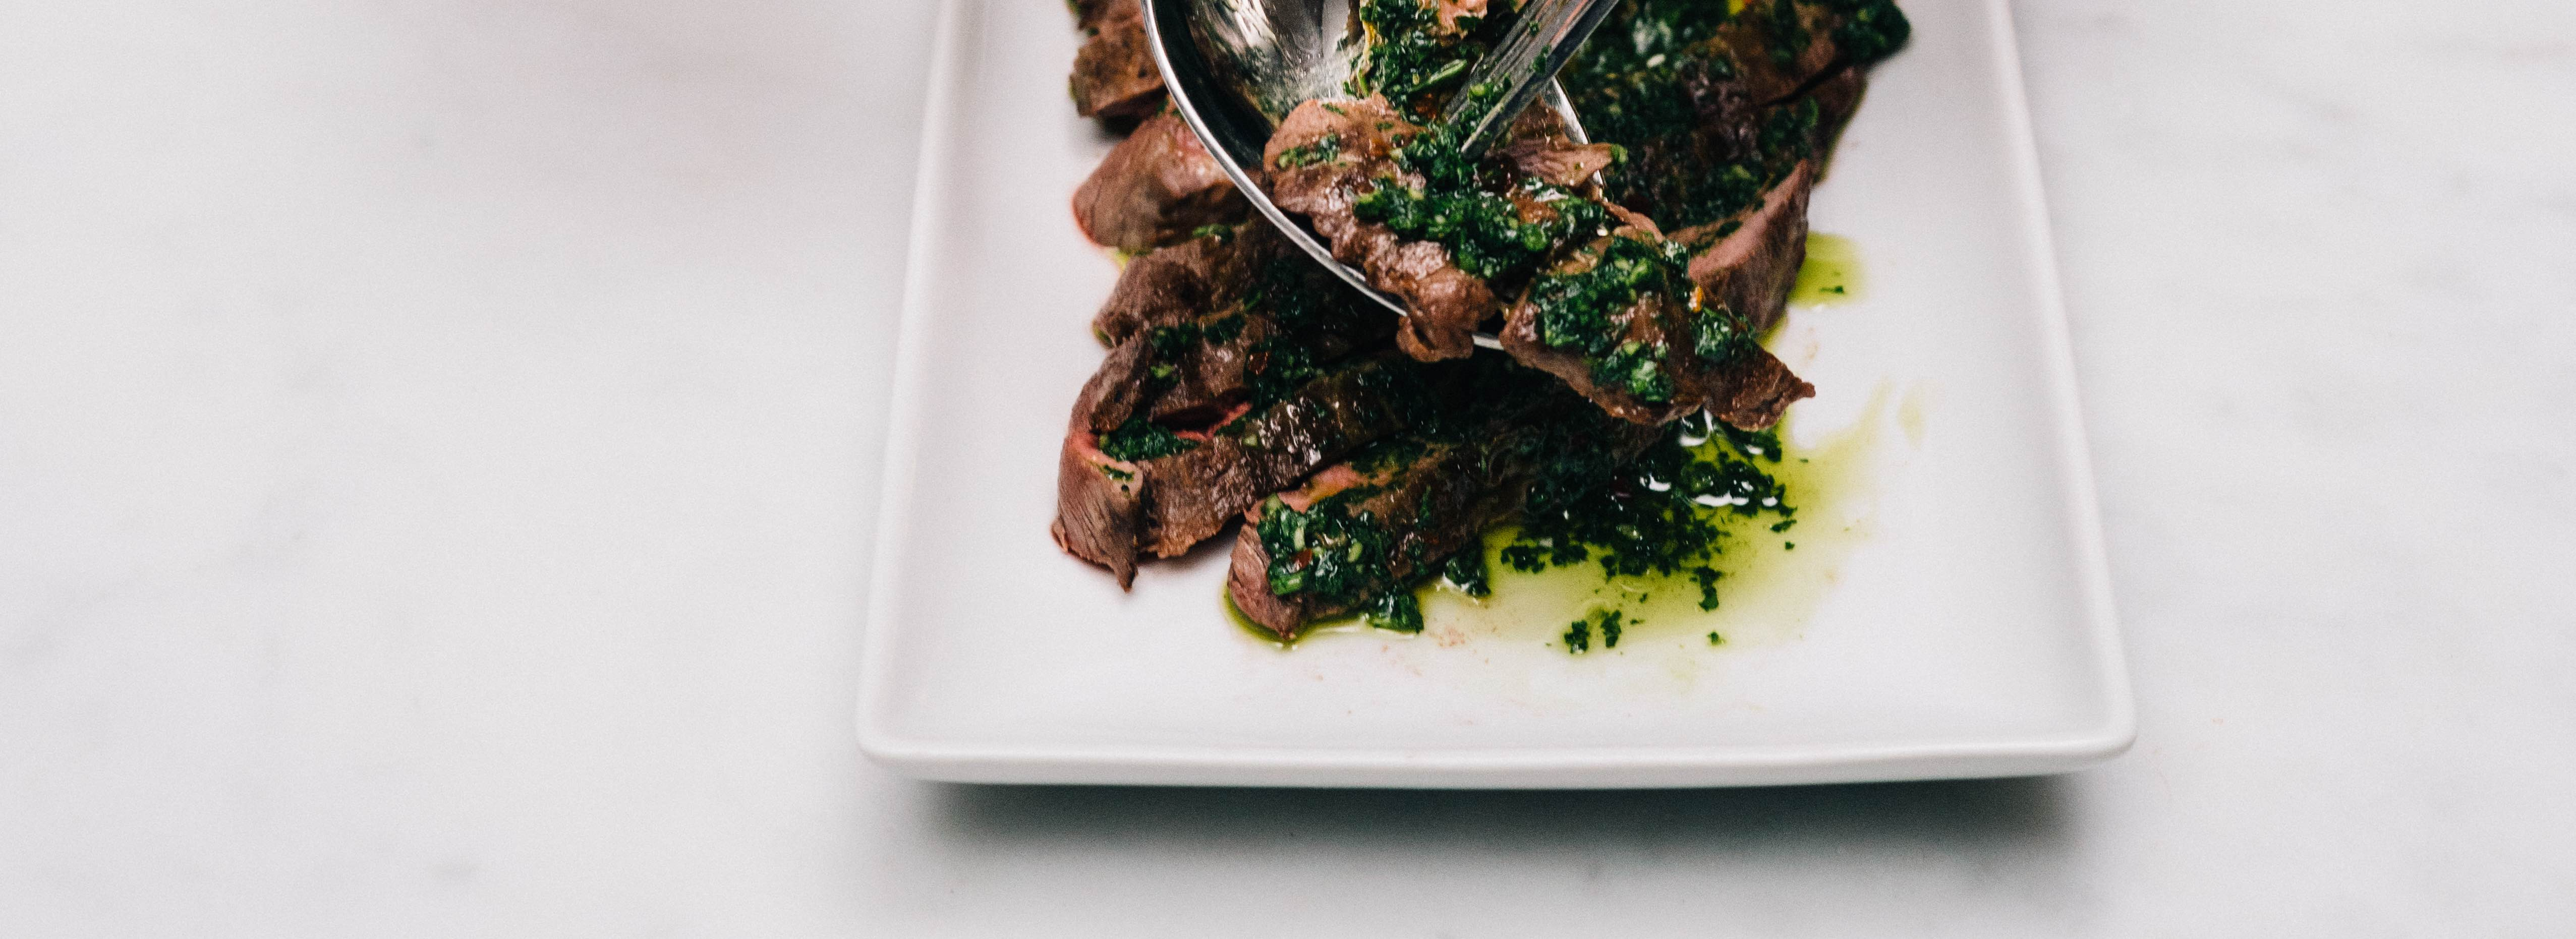 <p>Using fresh plum concentrate in chimichurri keeps the herbs from oxidizing, improving the appearance of the classic condiment.</p>